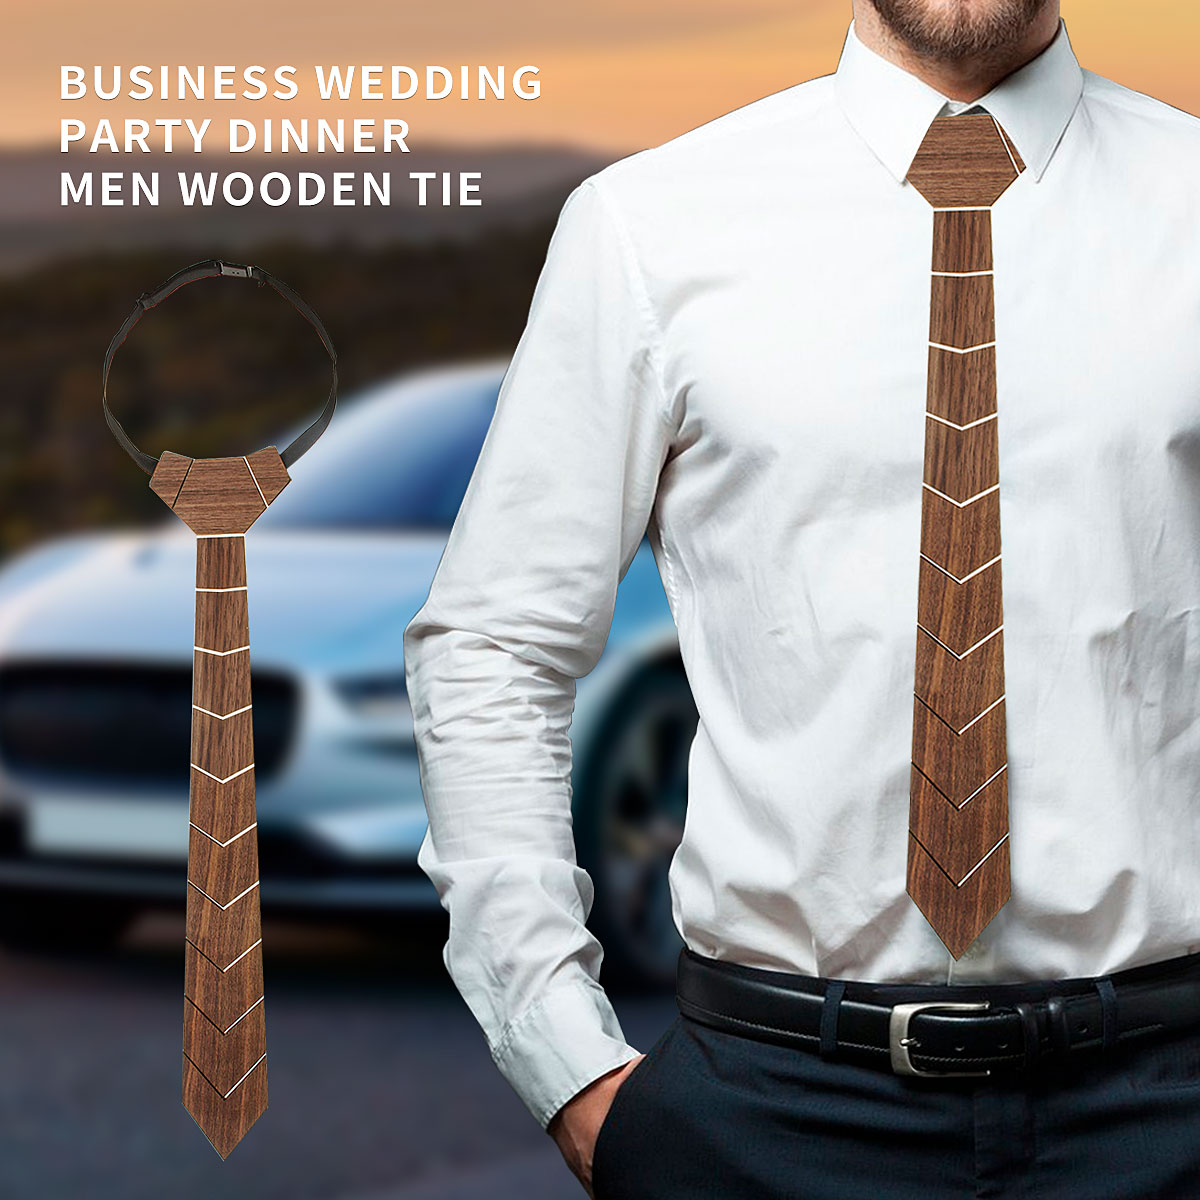 Collapsible Fashion Wooden Tie 100% Hand Made Classic Paisley Ties For Men Formal Wear Wood Tie Wedding Men Gift Suit Decoration